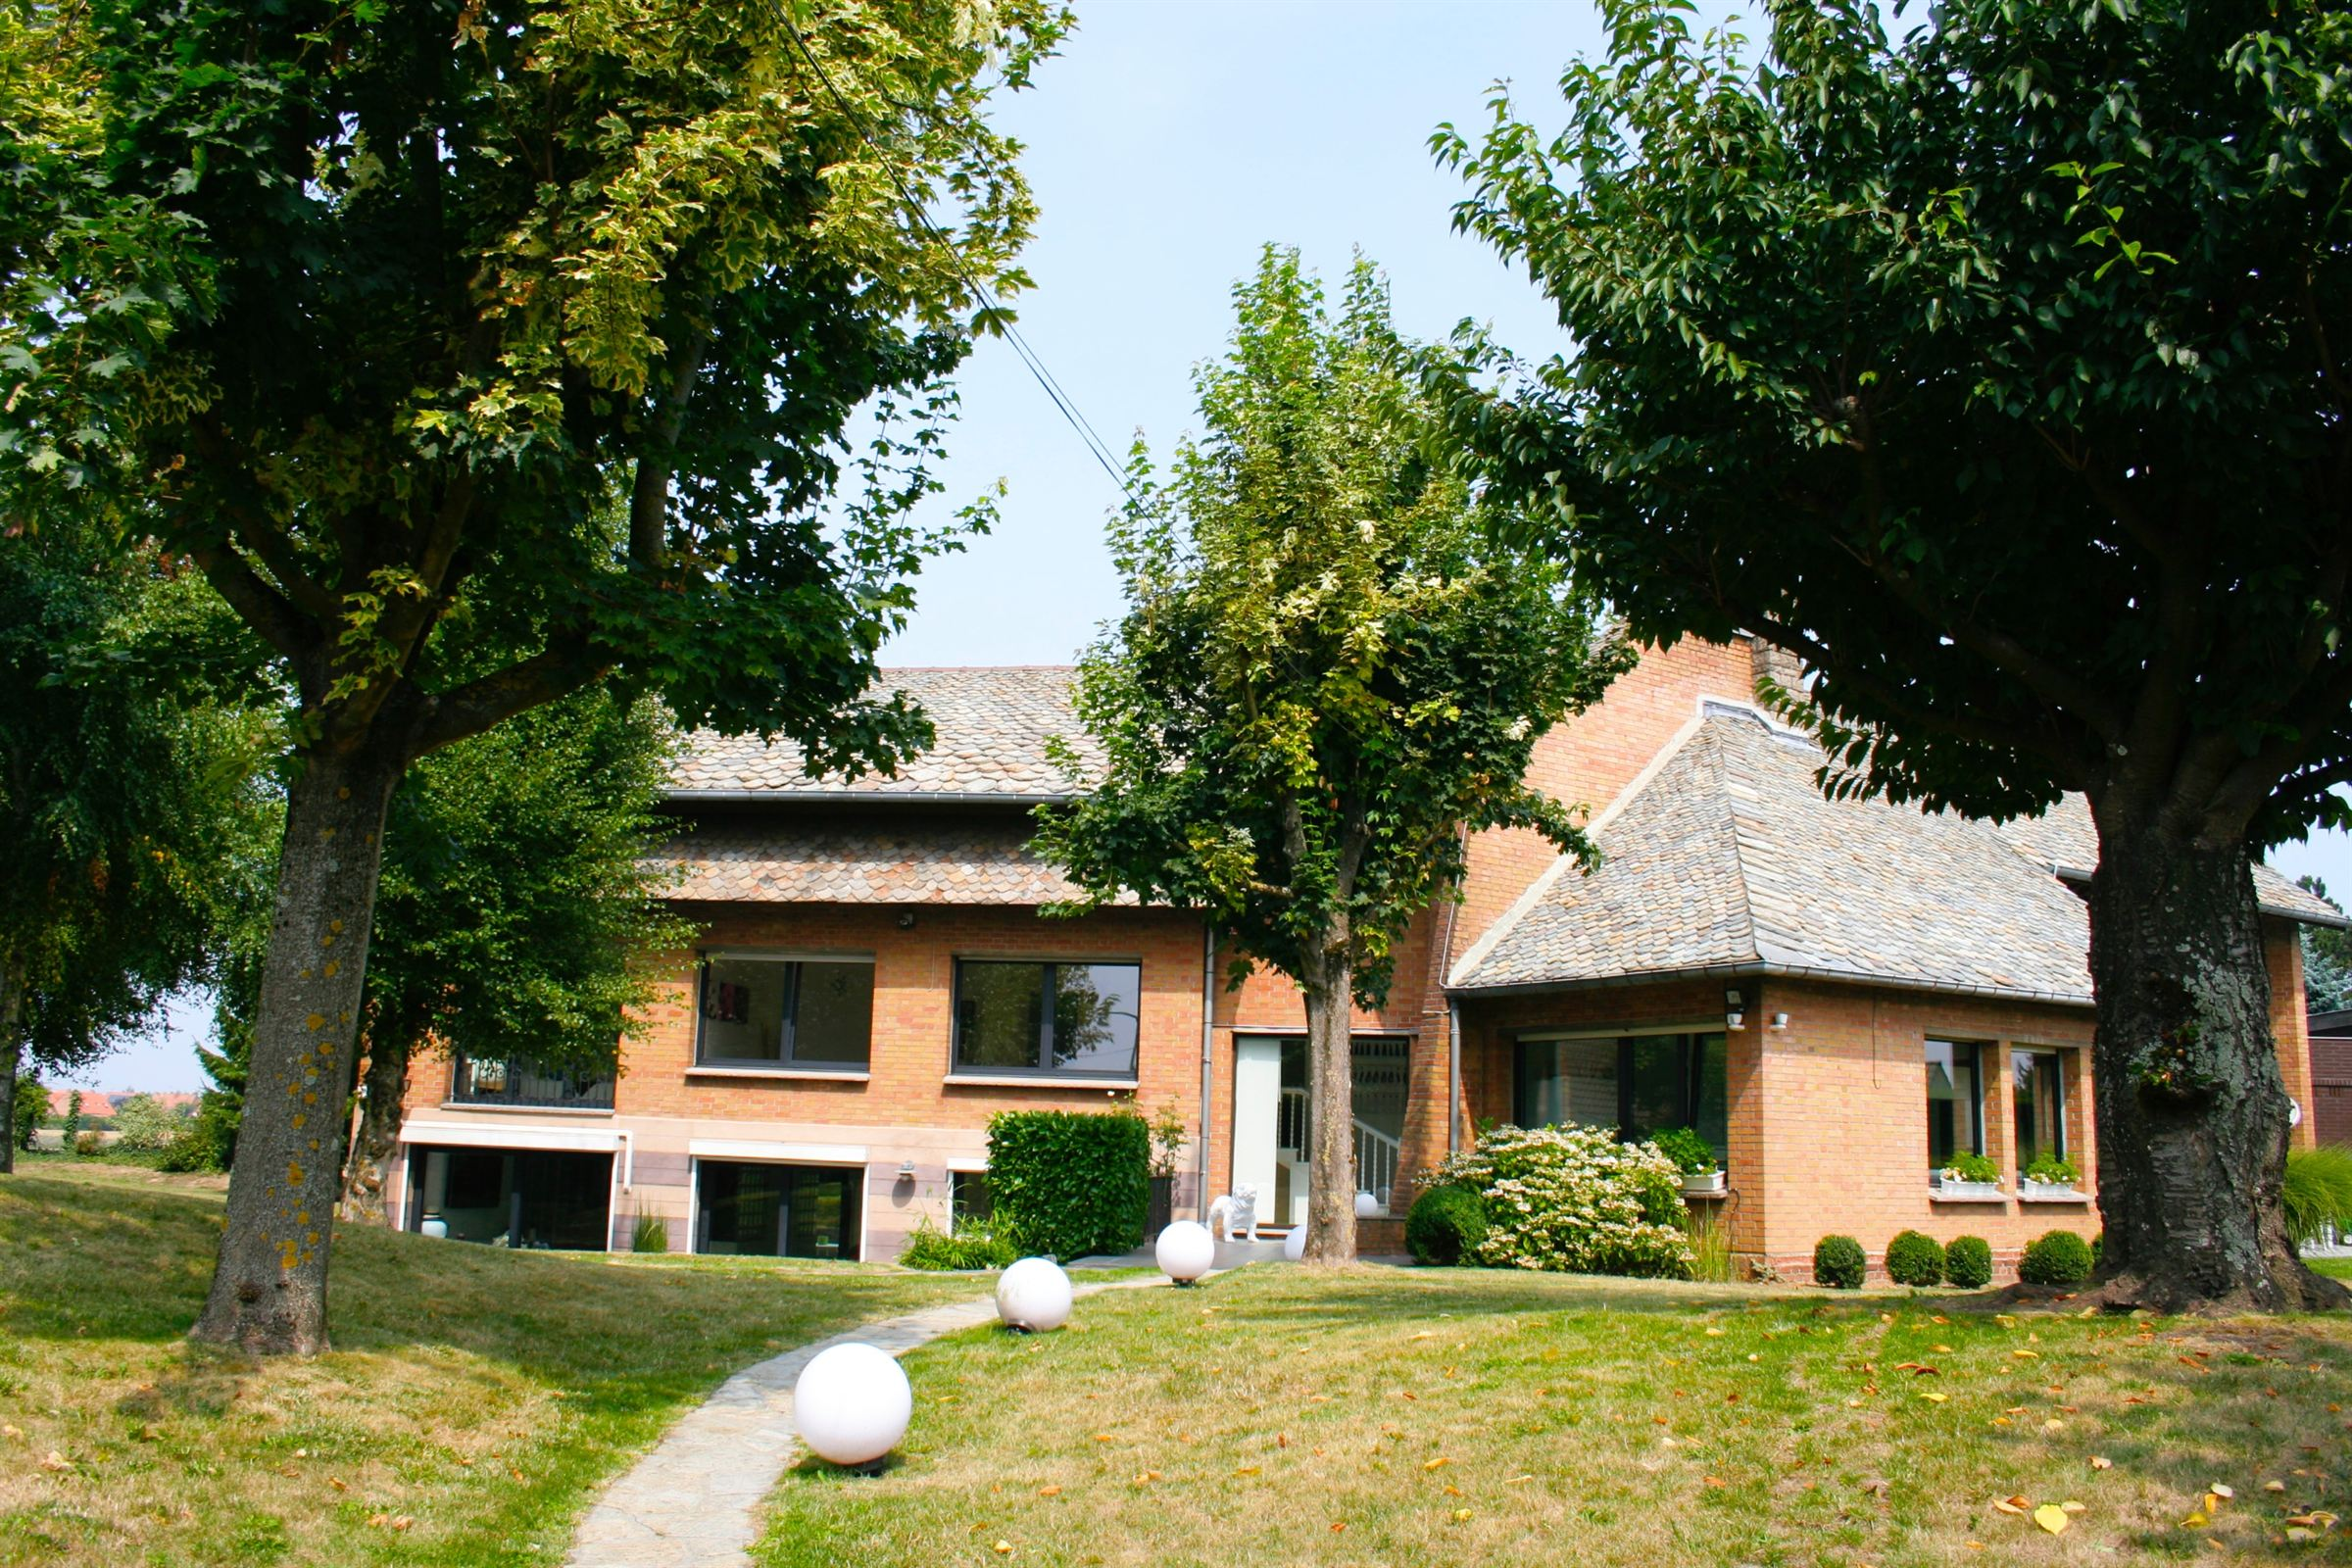 Property For Sale at LESQUIN architectural villa 385 m2 hab. 5 beds